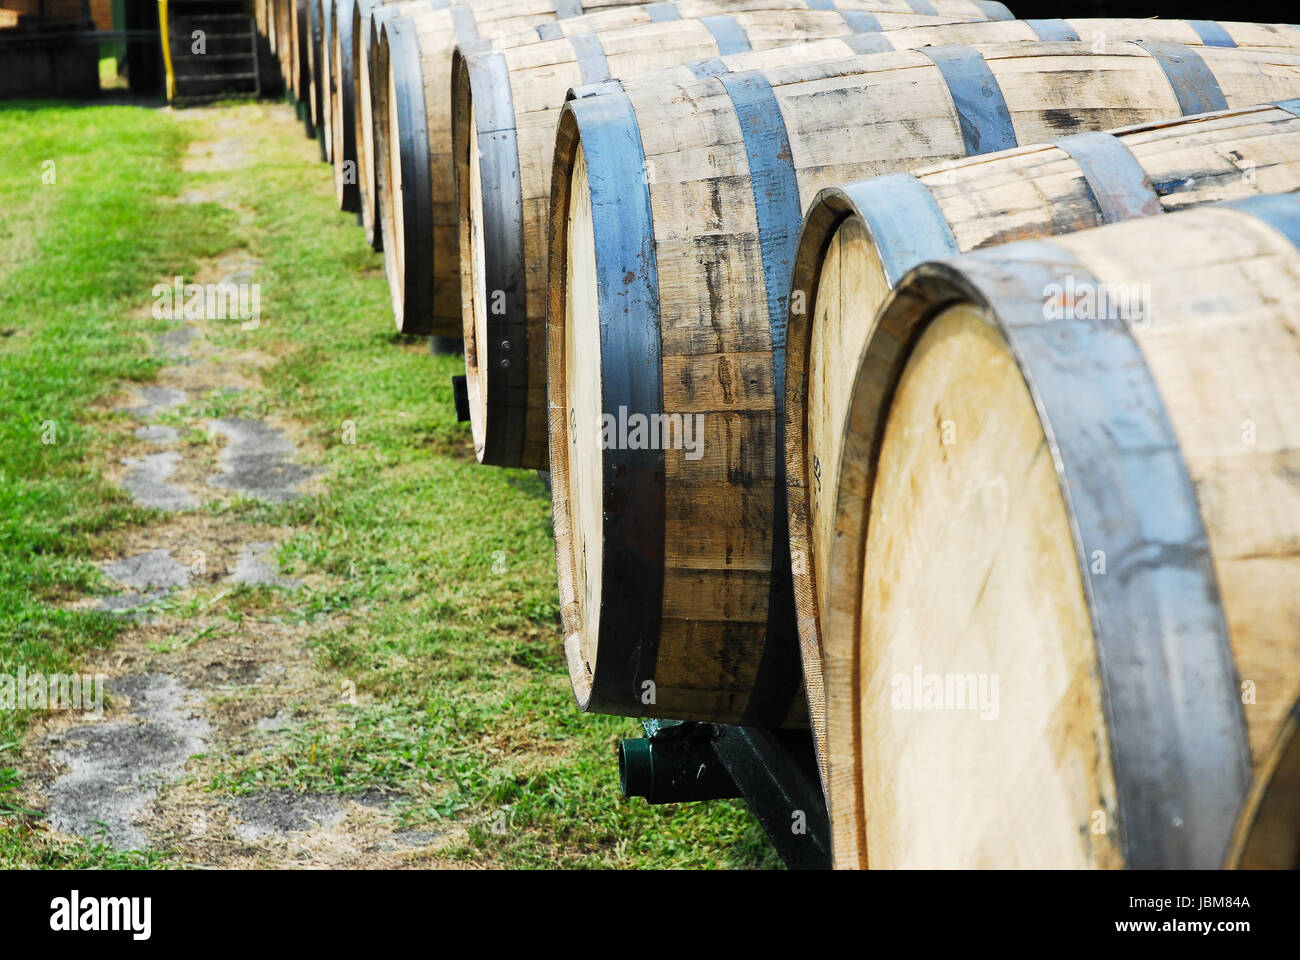 Barrels used for aging bourbon whiskey at a distillery in Kentucky. - Stock Image